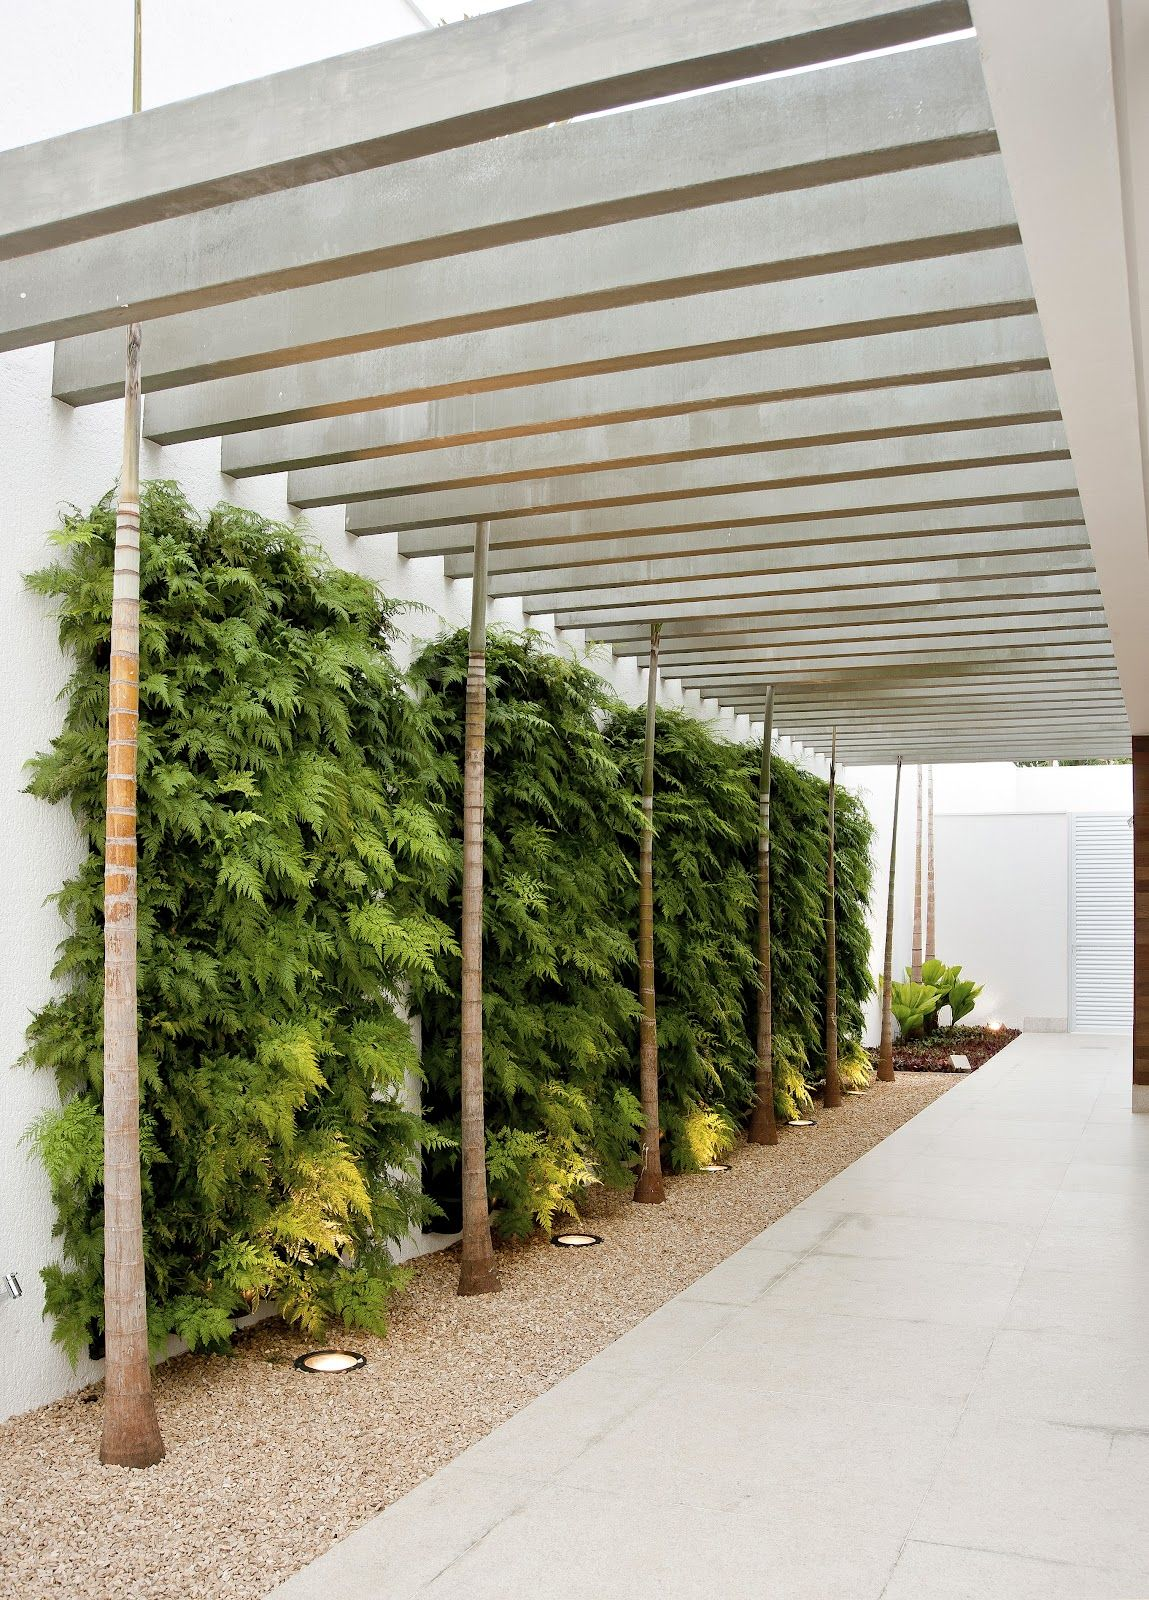 Neat privacy screen for a carport (the plants). Very